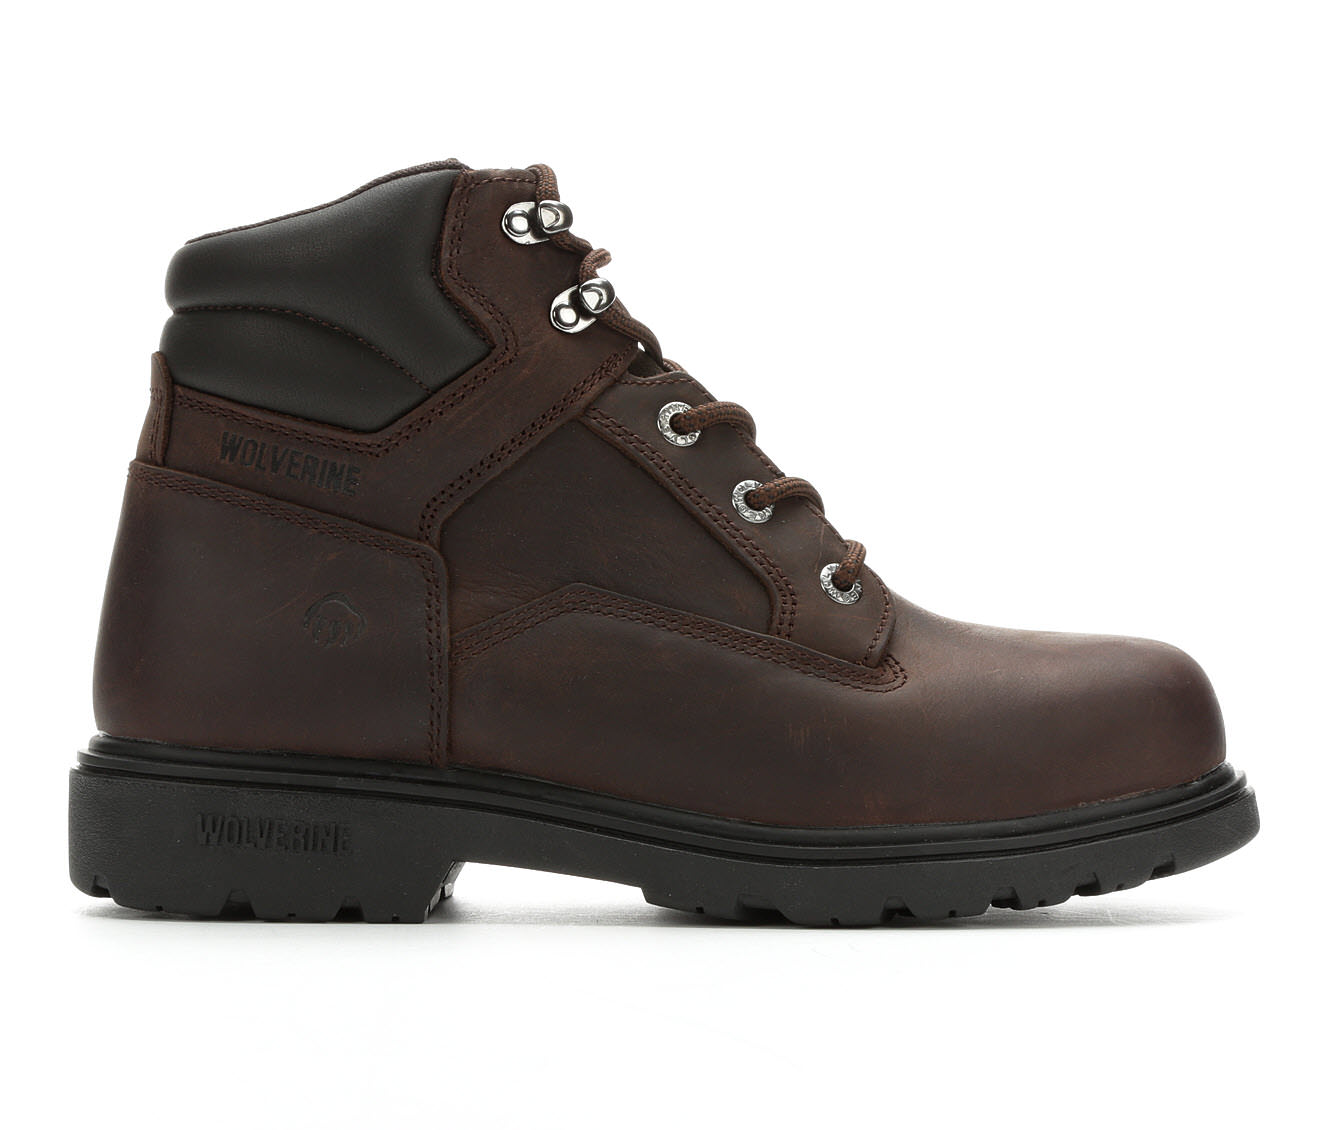 Wolverine 6 In Bulldozer Steel Toe Men's Boots (Brown Leather)